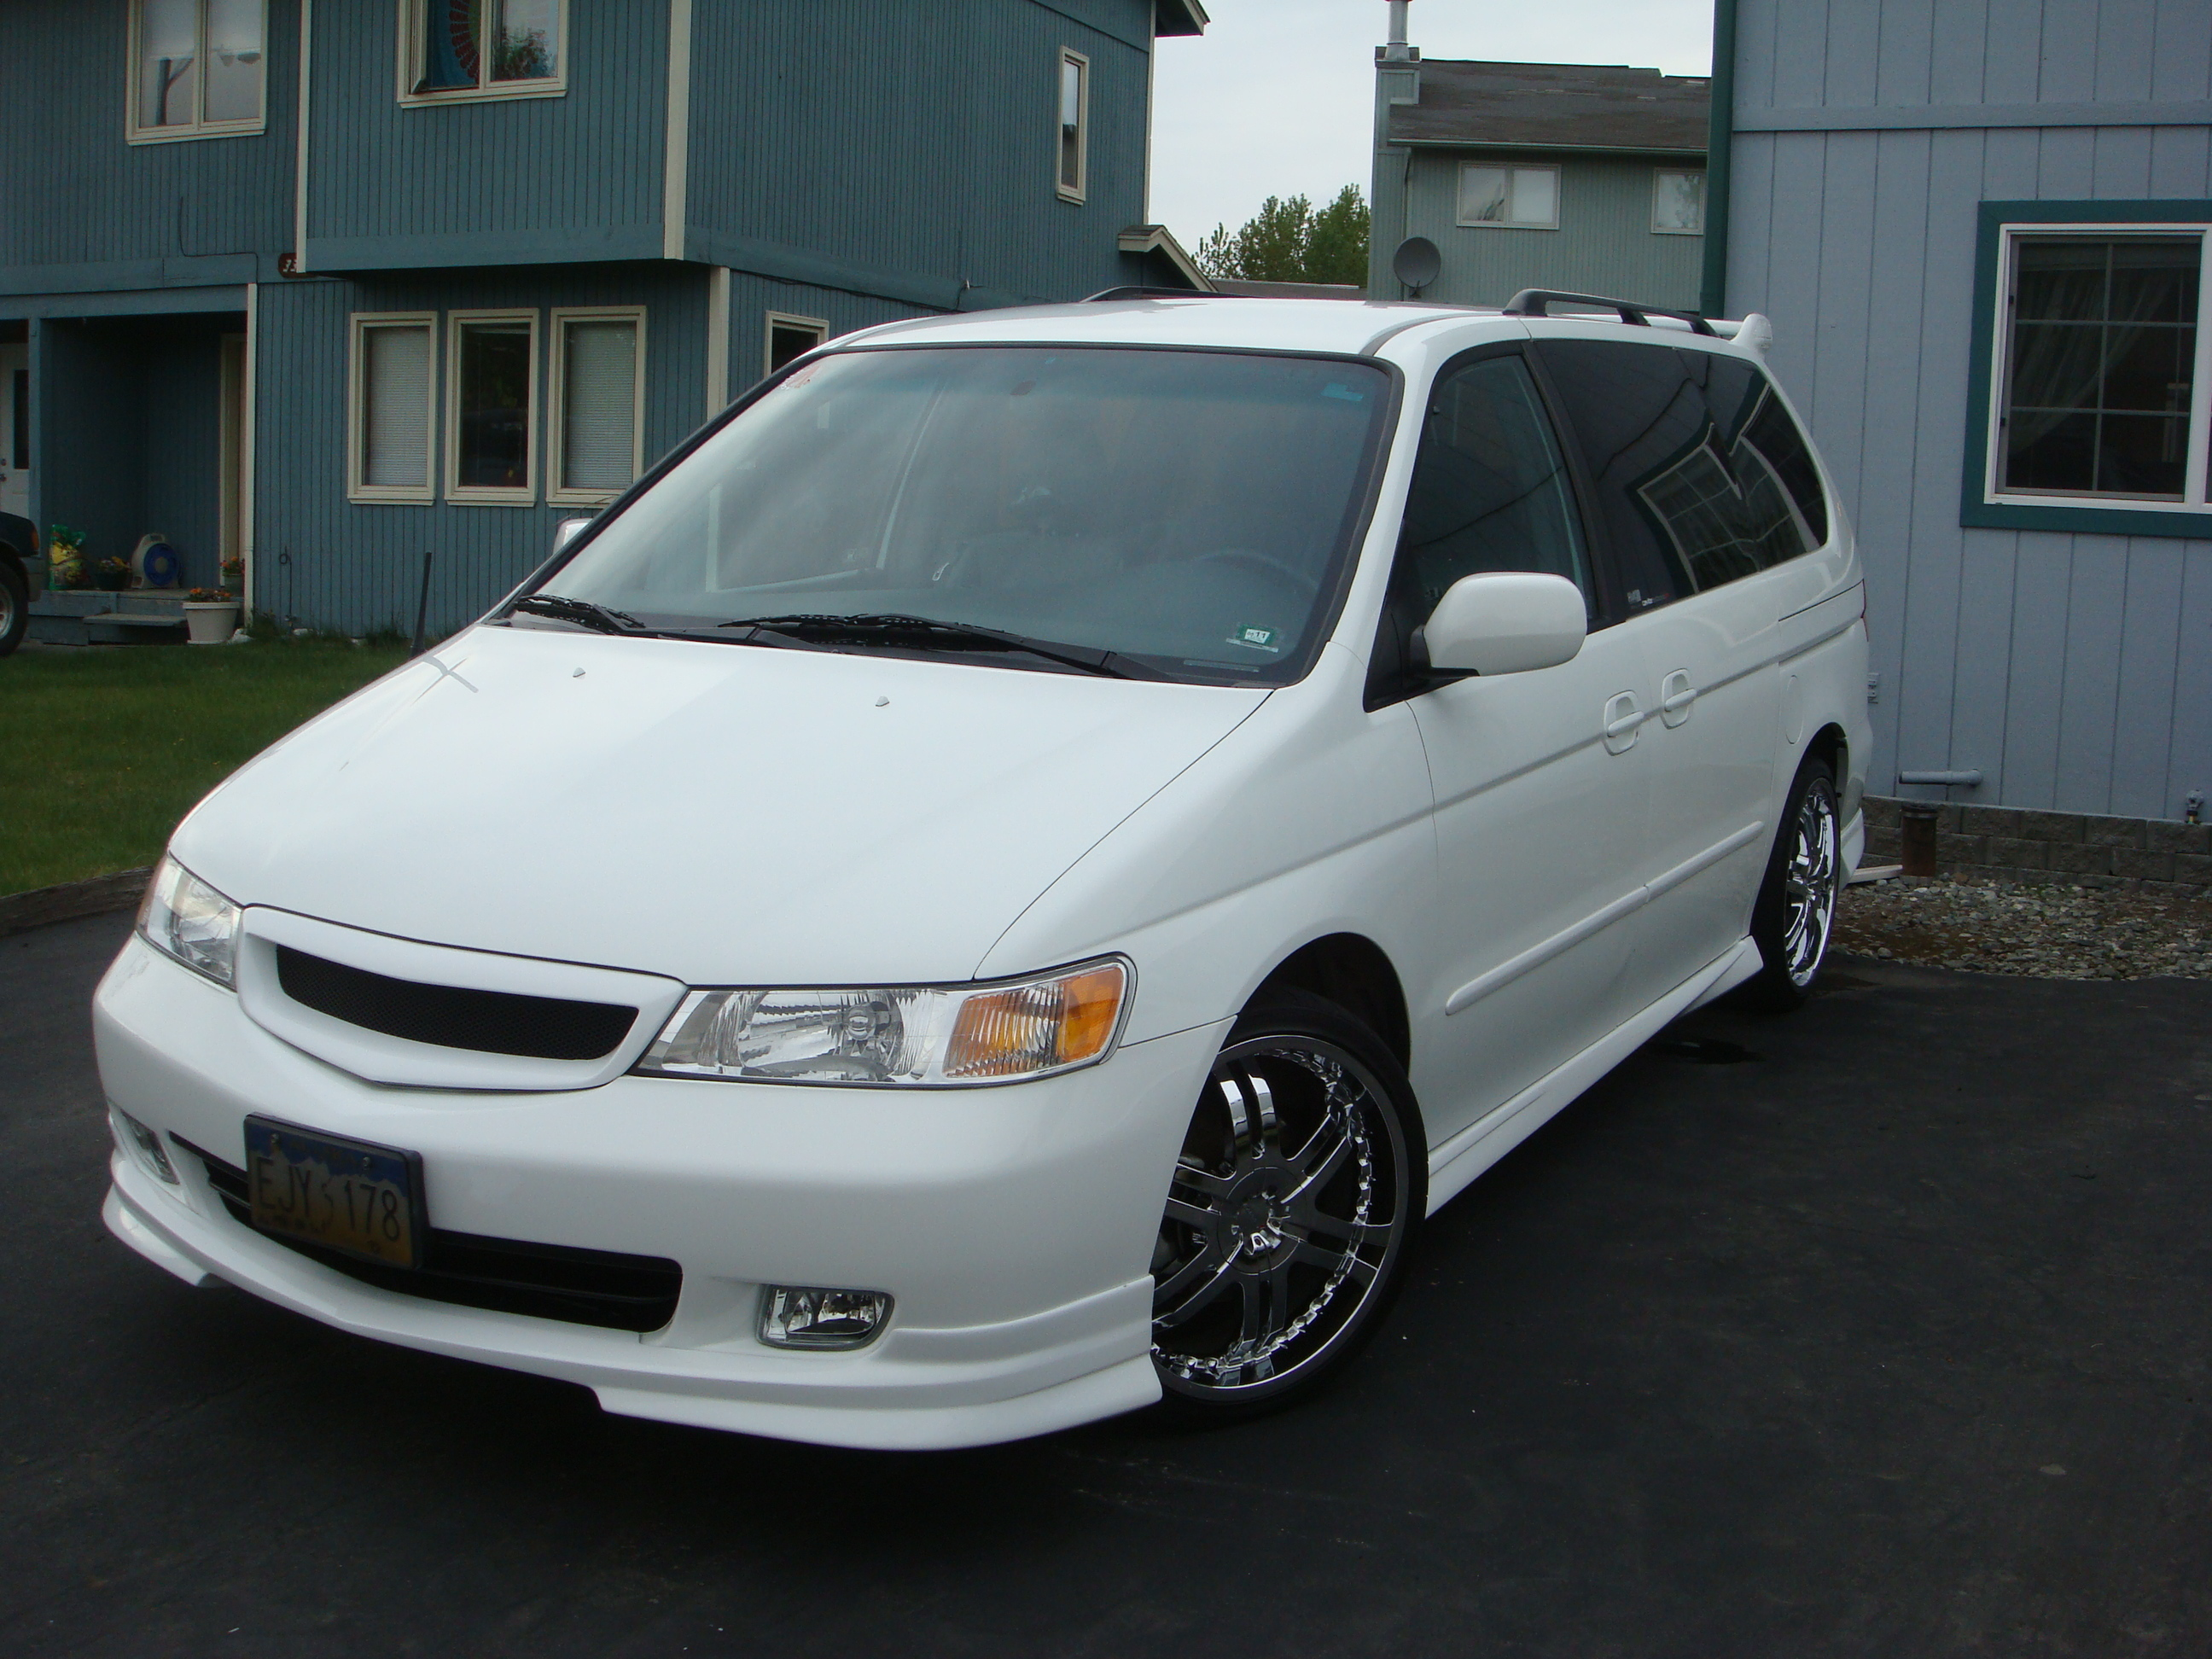 reymerus 2003 honda odyssey specs photos modification info at cardomain. Black Bedroom Furniture Sets. Home Design Ideas